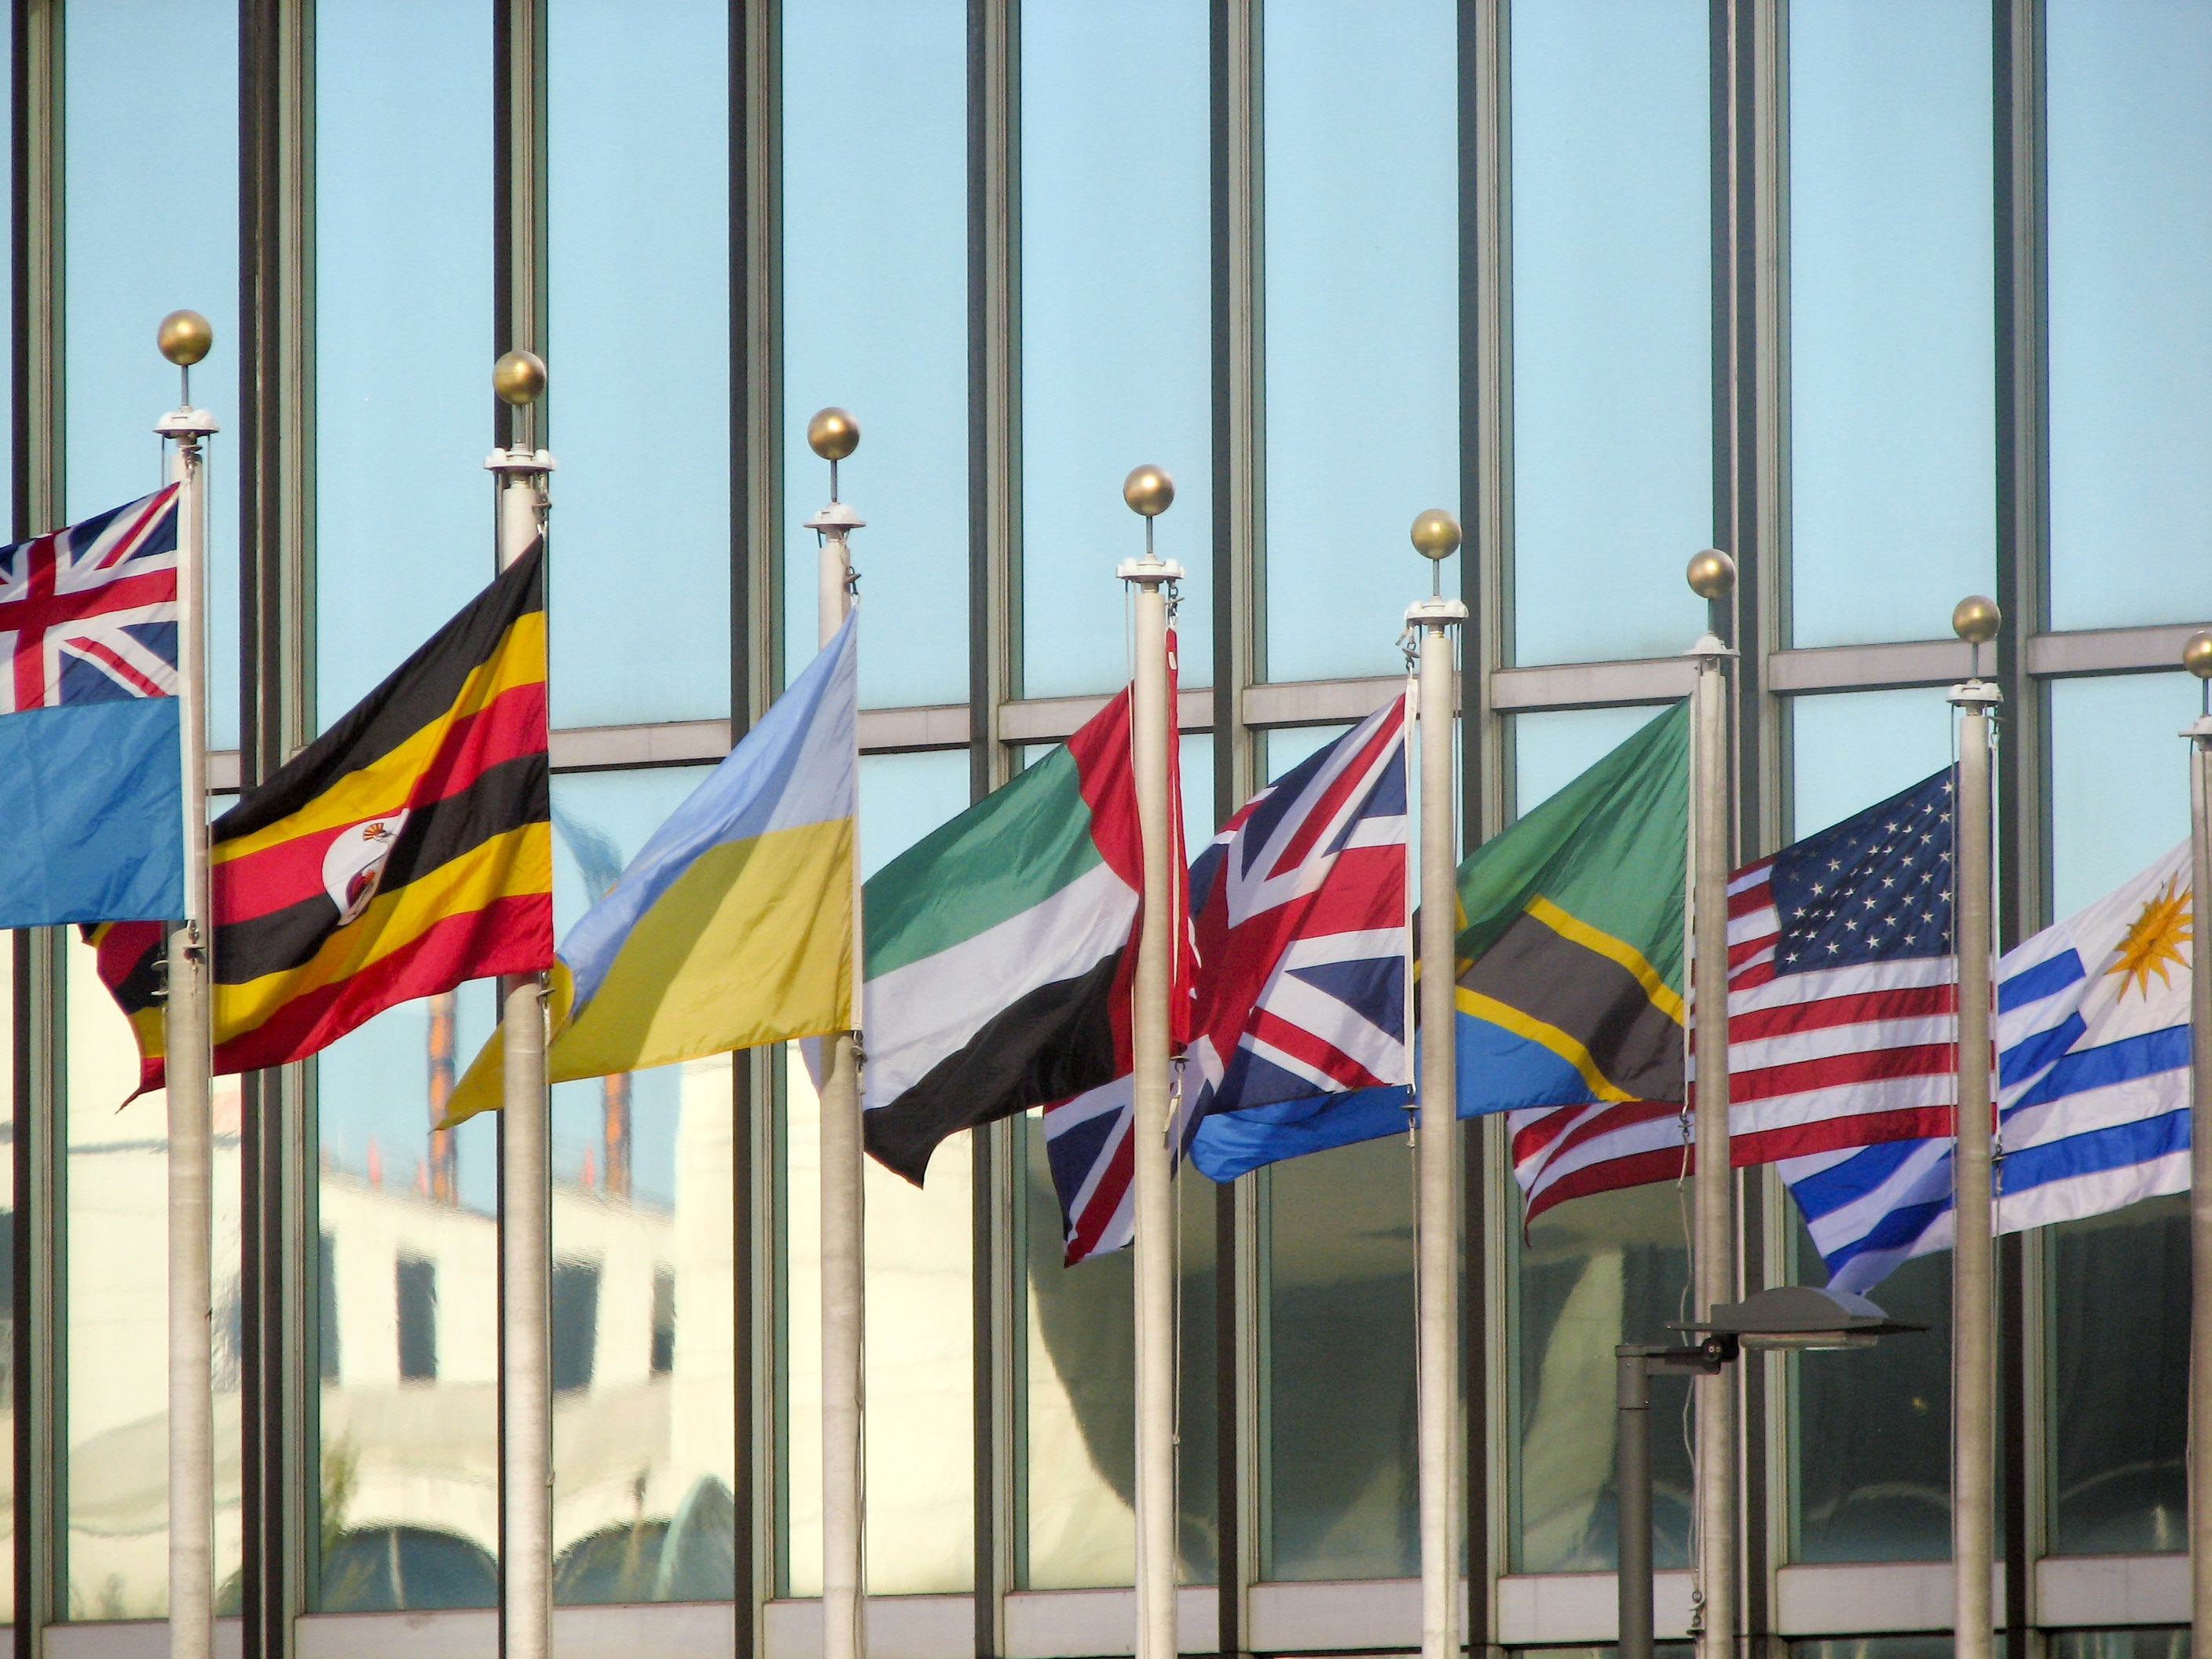 Flags in front of UN Headquarters in New York. USAID photo